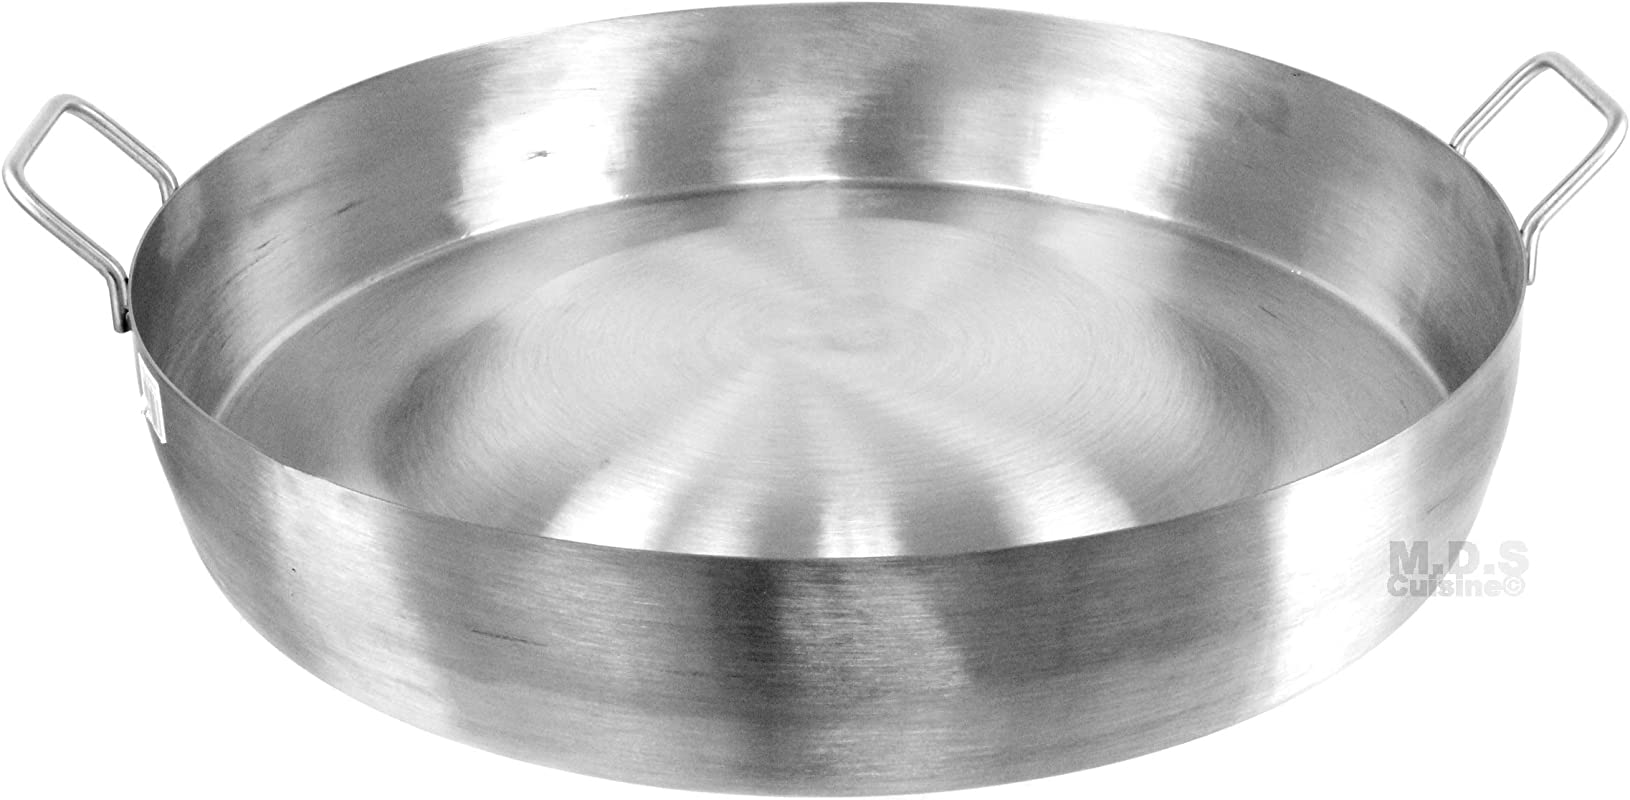 Comal Convex 21 5 Stainless Steel Panza Arriba Heavy Duty Commercial Mexican Griddle Extra High Rim